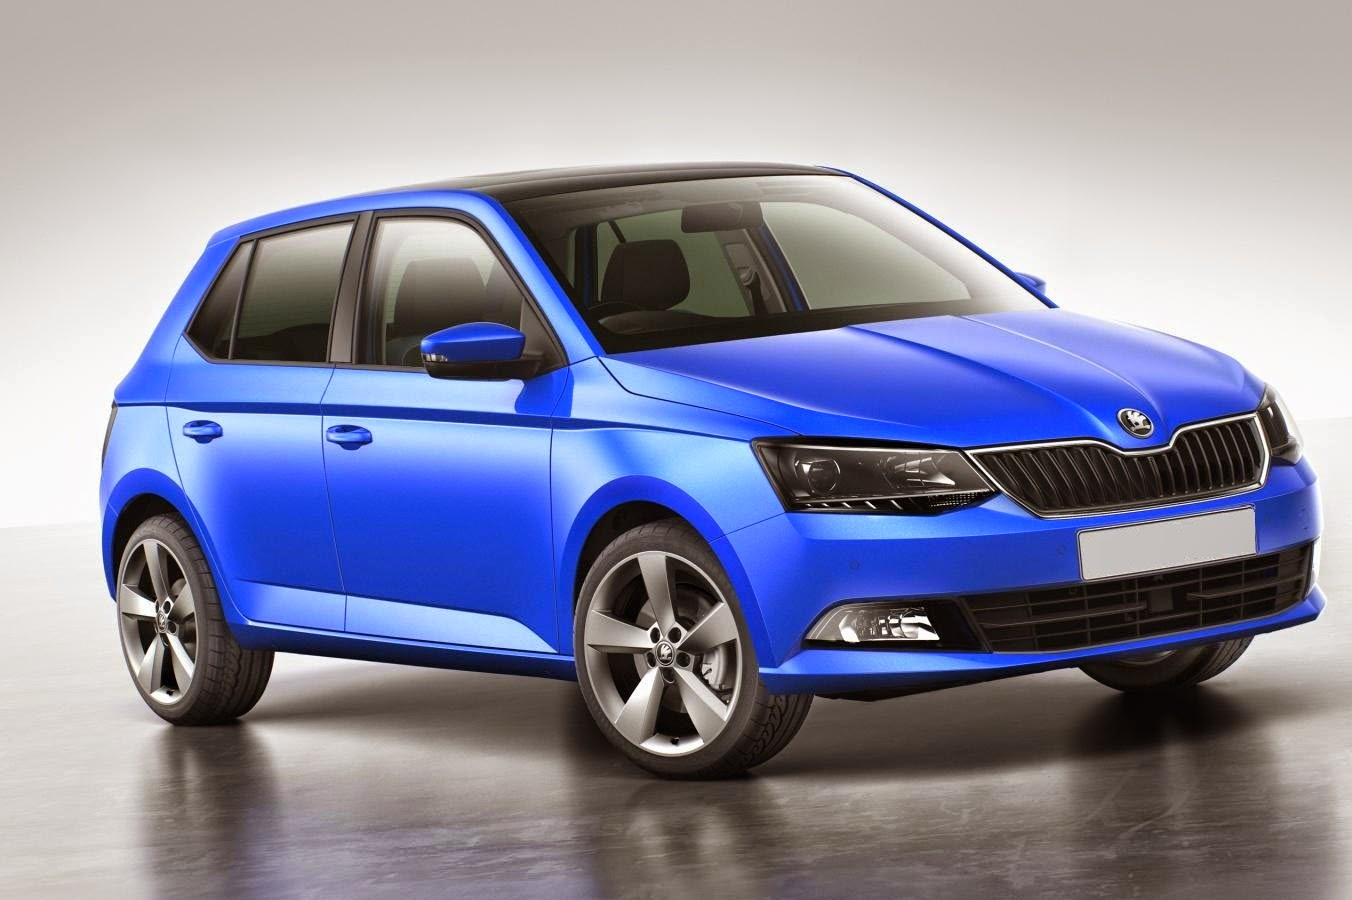 all new 2015 skoda fabia hatchback revealed car reviews new car pictures for 2018 2019. Black Bedroom Furniture Sets. Home Design Ideas